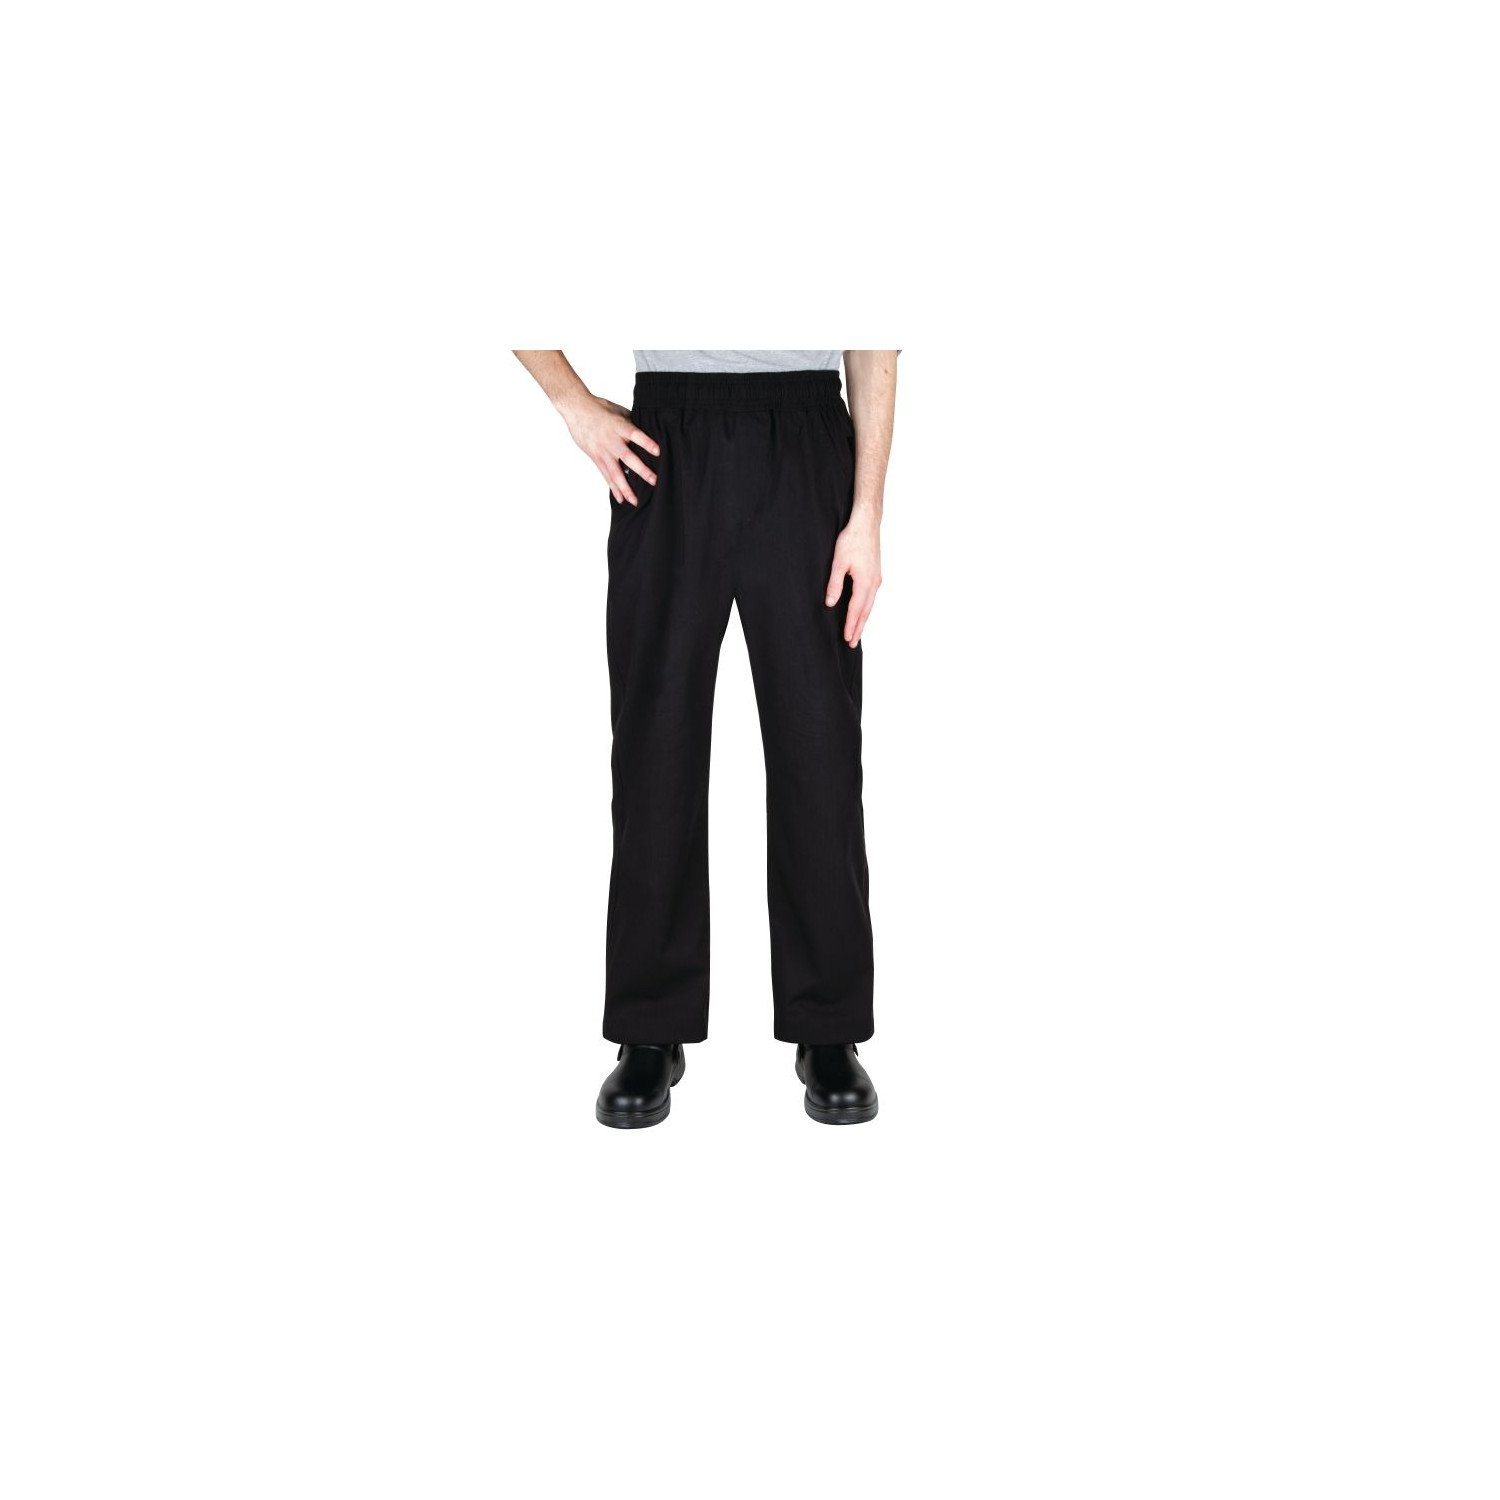 "Pantalon ""Baggy"" noir S CHEF WORKS Nisbets Vêtements"